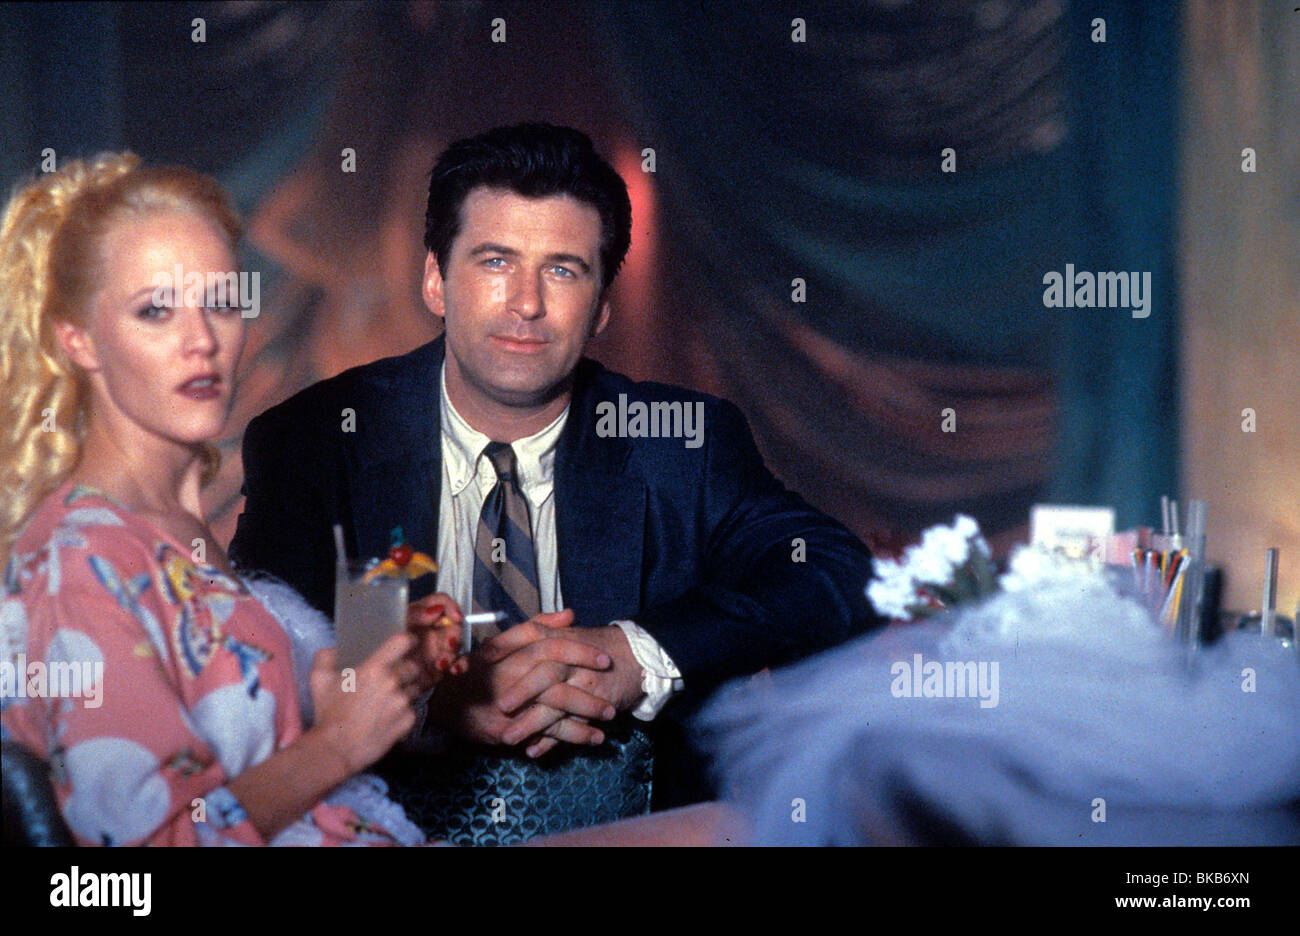 HEAVEN'S PRISONERS (1996) MARY STUART MASTERSON, ALEC BALDWIN HVPR 003 Stock Photo